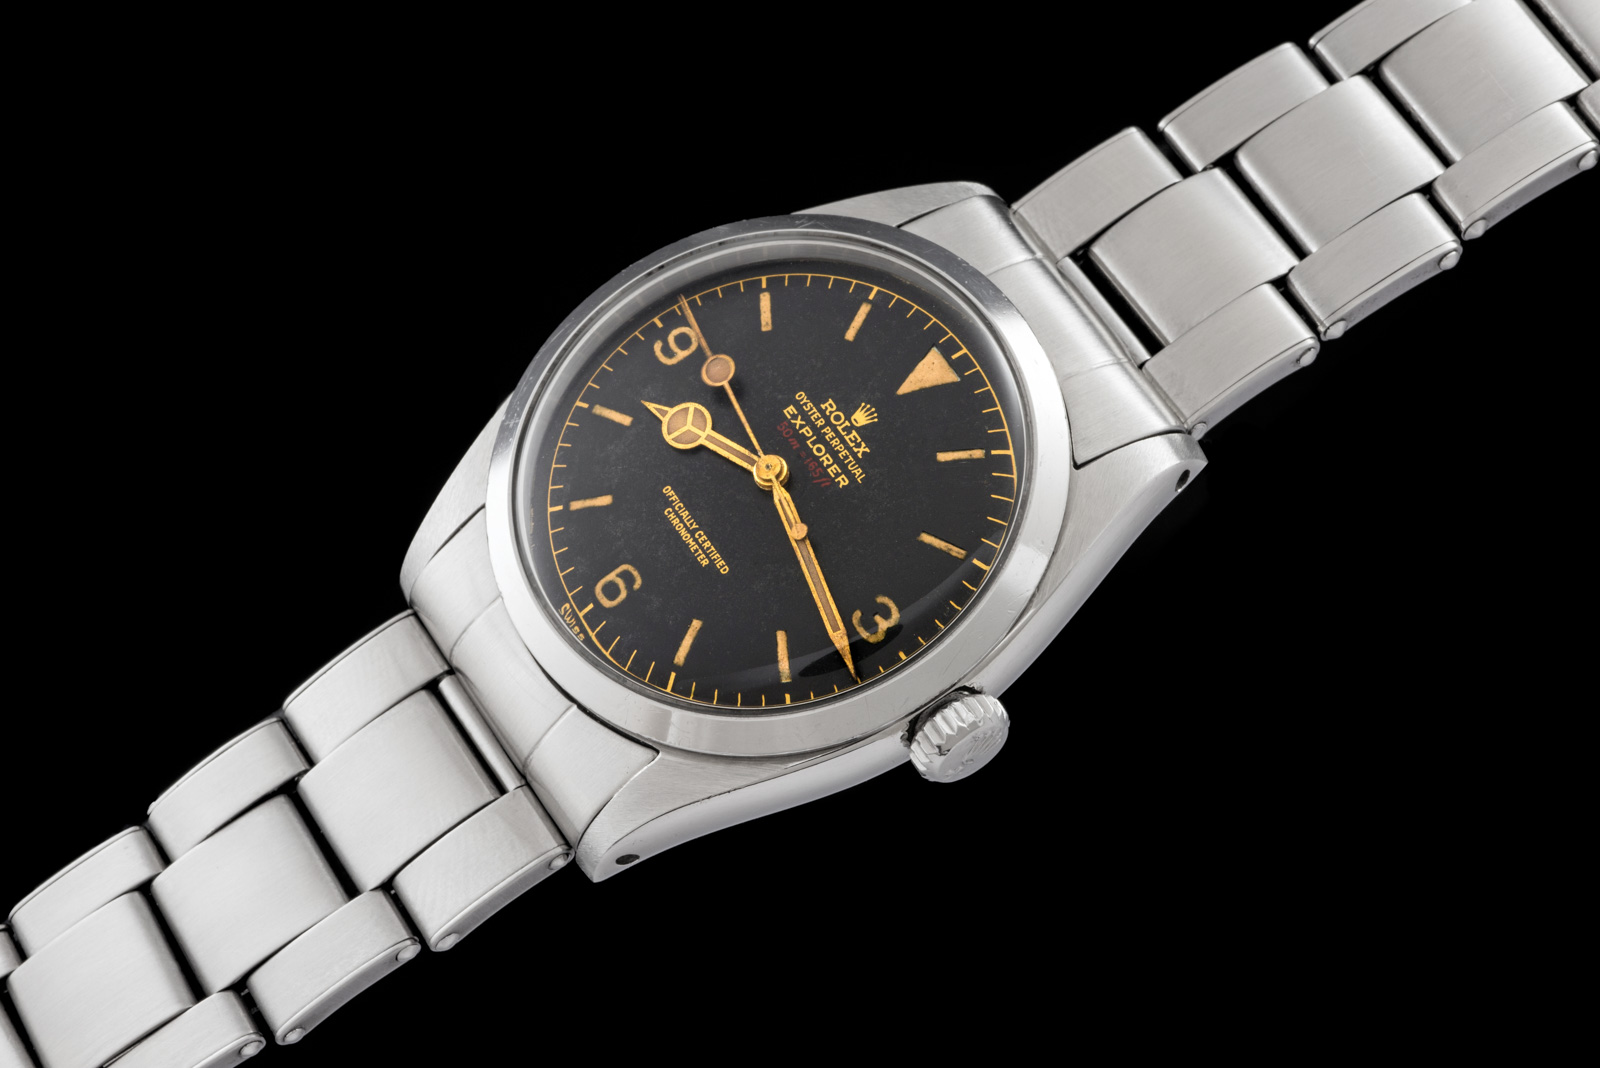 Rolex The full set Red Depth Explorer ref. 6610 0